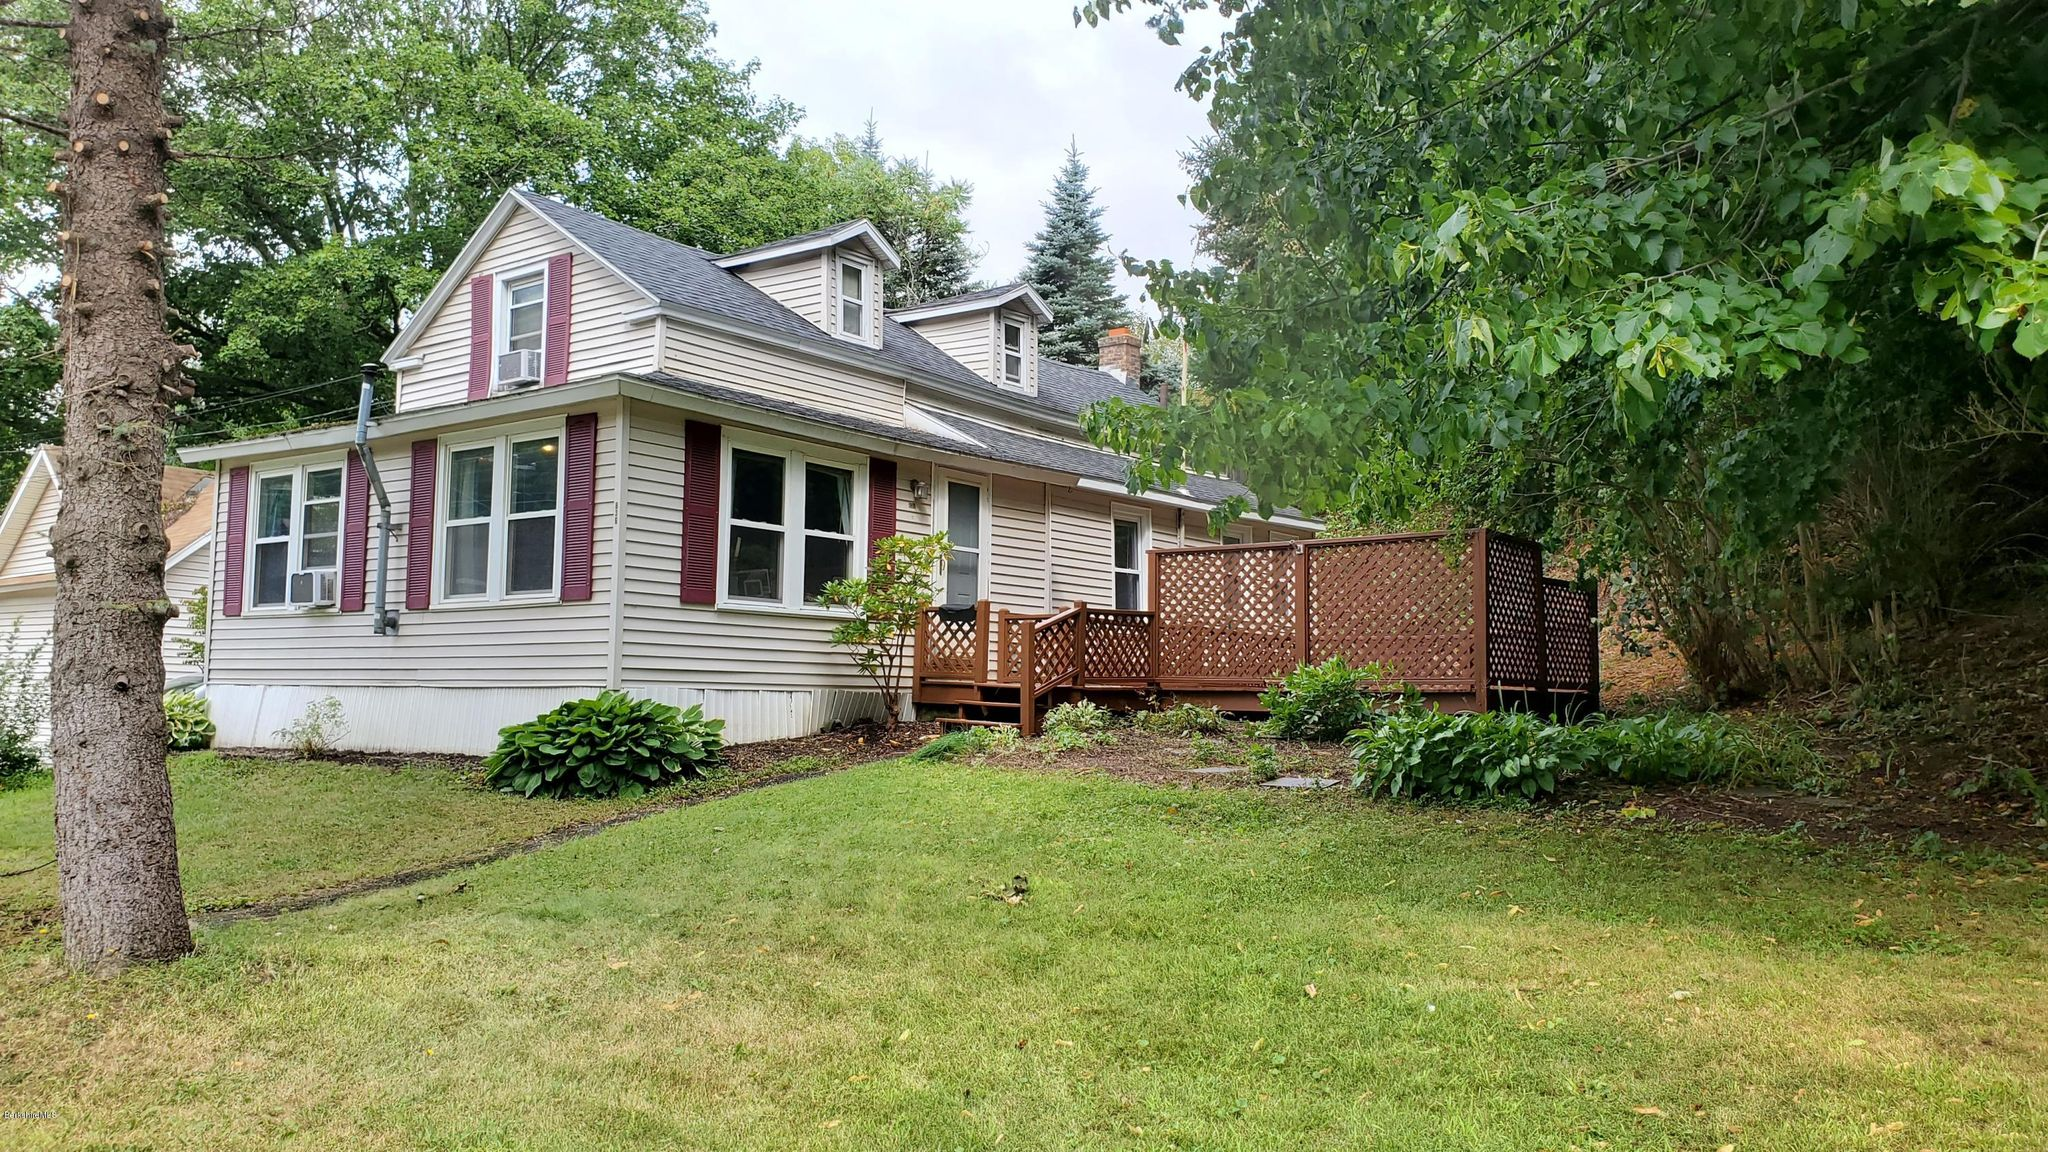 137 Strong Ave, Pittsfield, MA 01201 - 3 Bed, 2 Bath